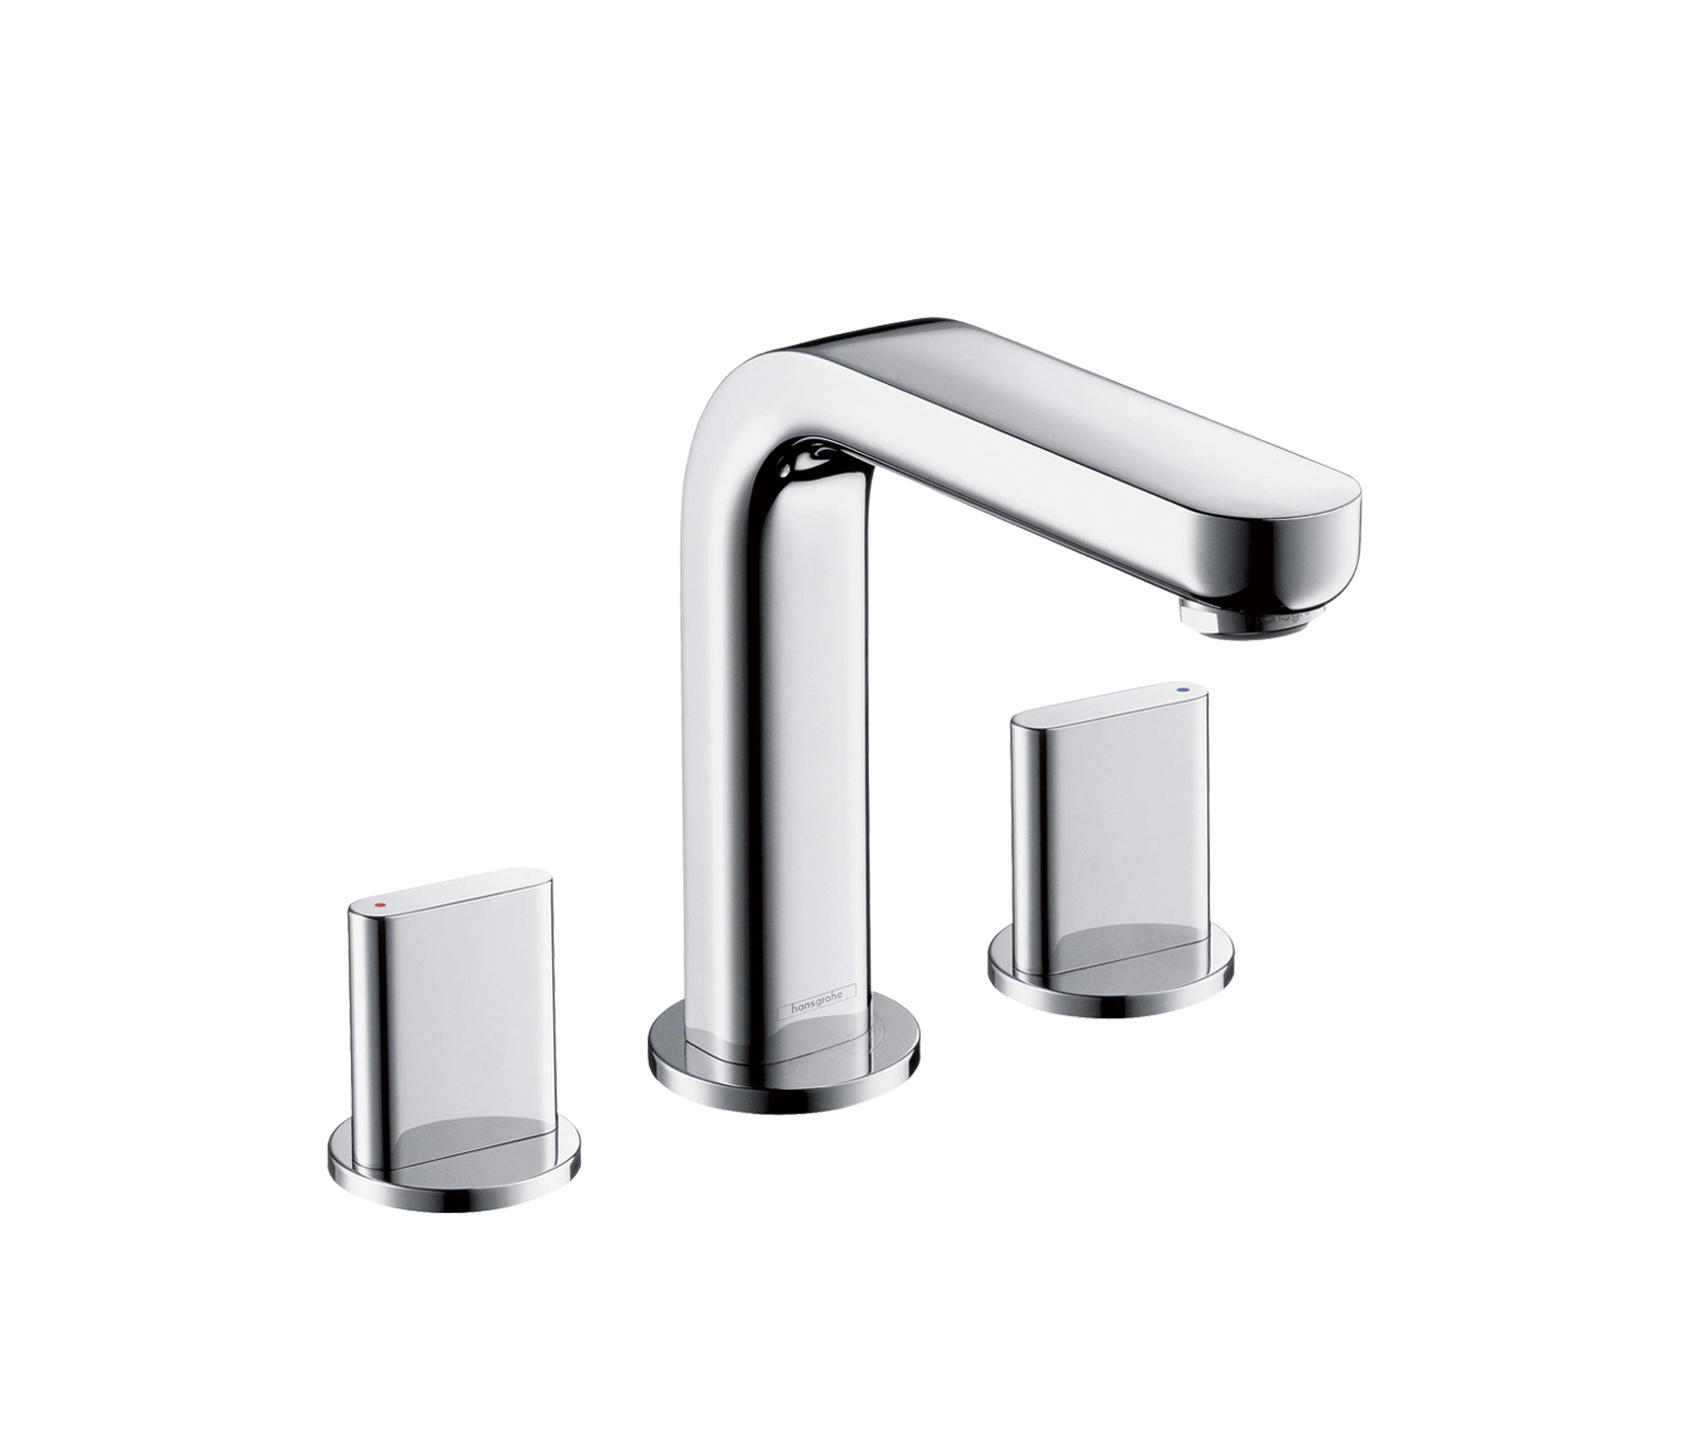 hansgrohe metropol s m langeur de lavabo 3 trous metropol s robinetterie pour lavabo de. Black Bedroom Furniture Sets. Home Design Ideas